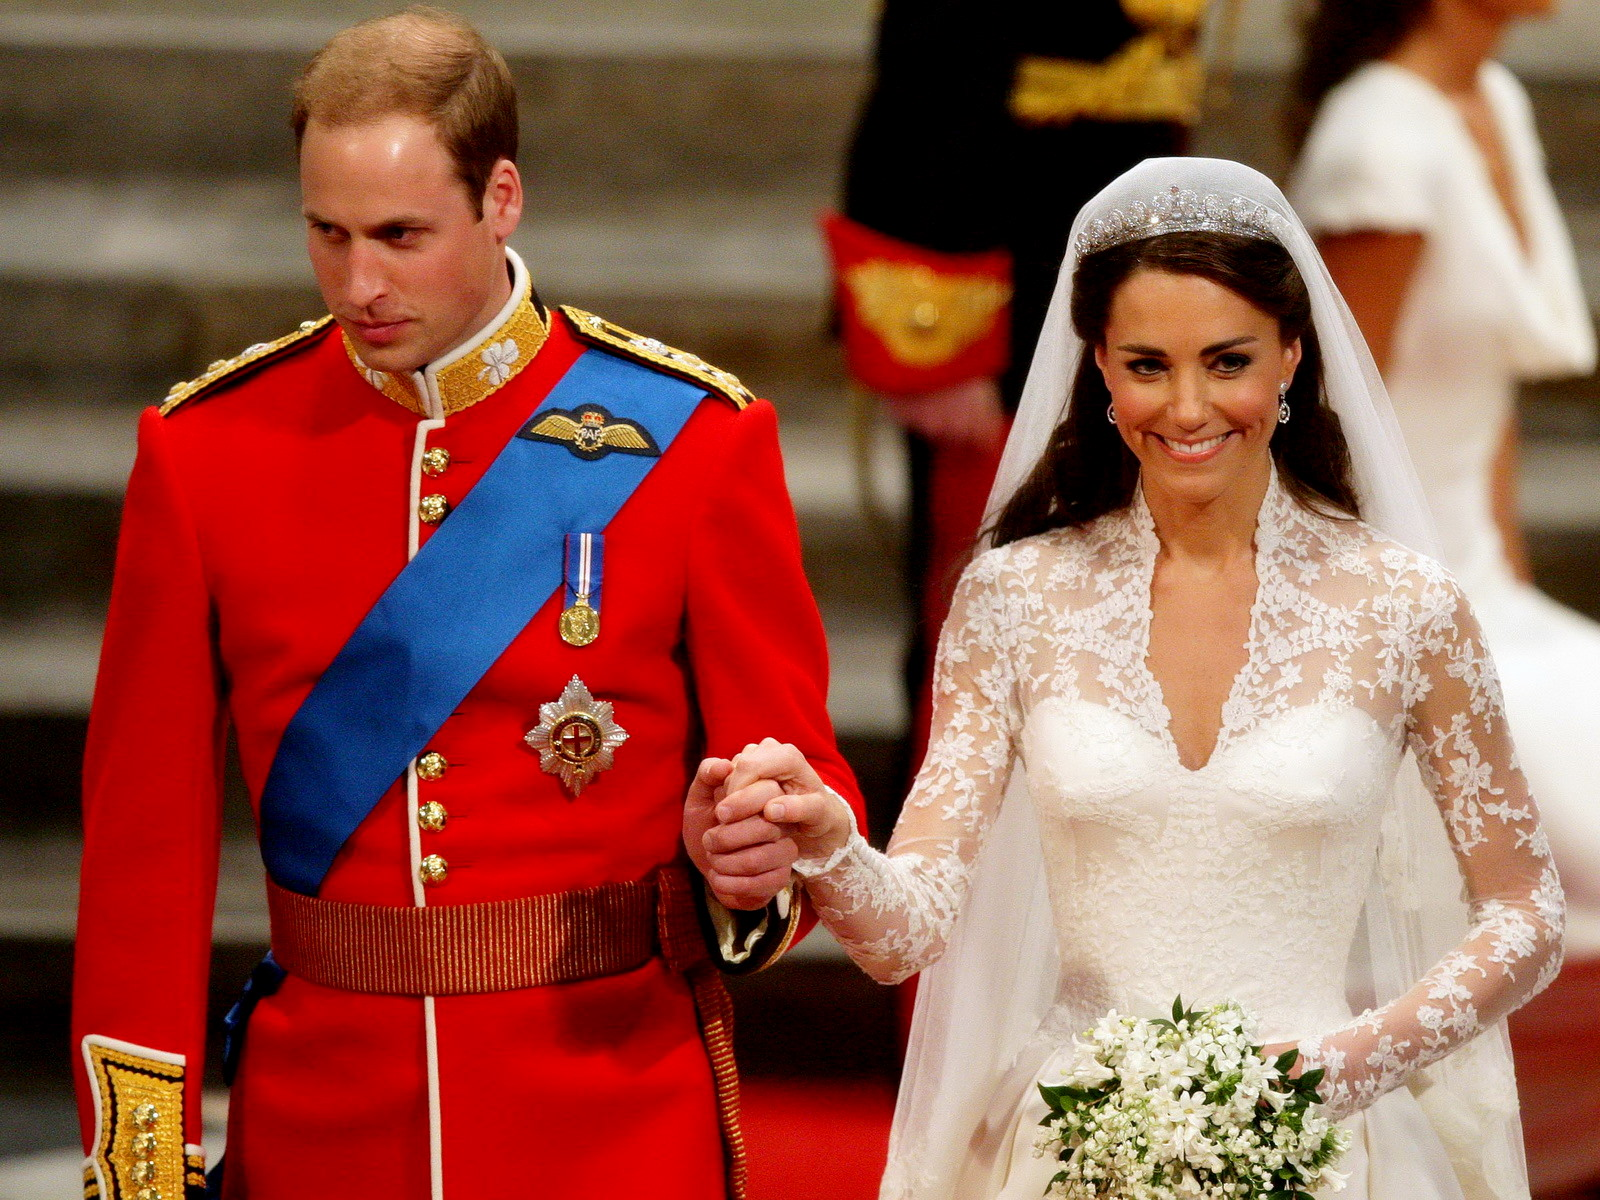 https://i1.wp.com/images6.fanpop.com/image/photos/33100000/Wills-Kate-prince-william-and-kate-middleton-33166687-1600-1200.jpg